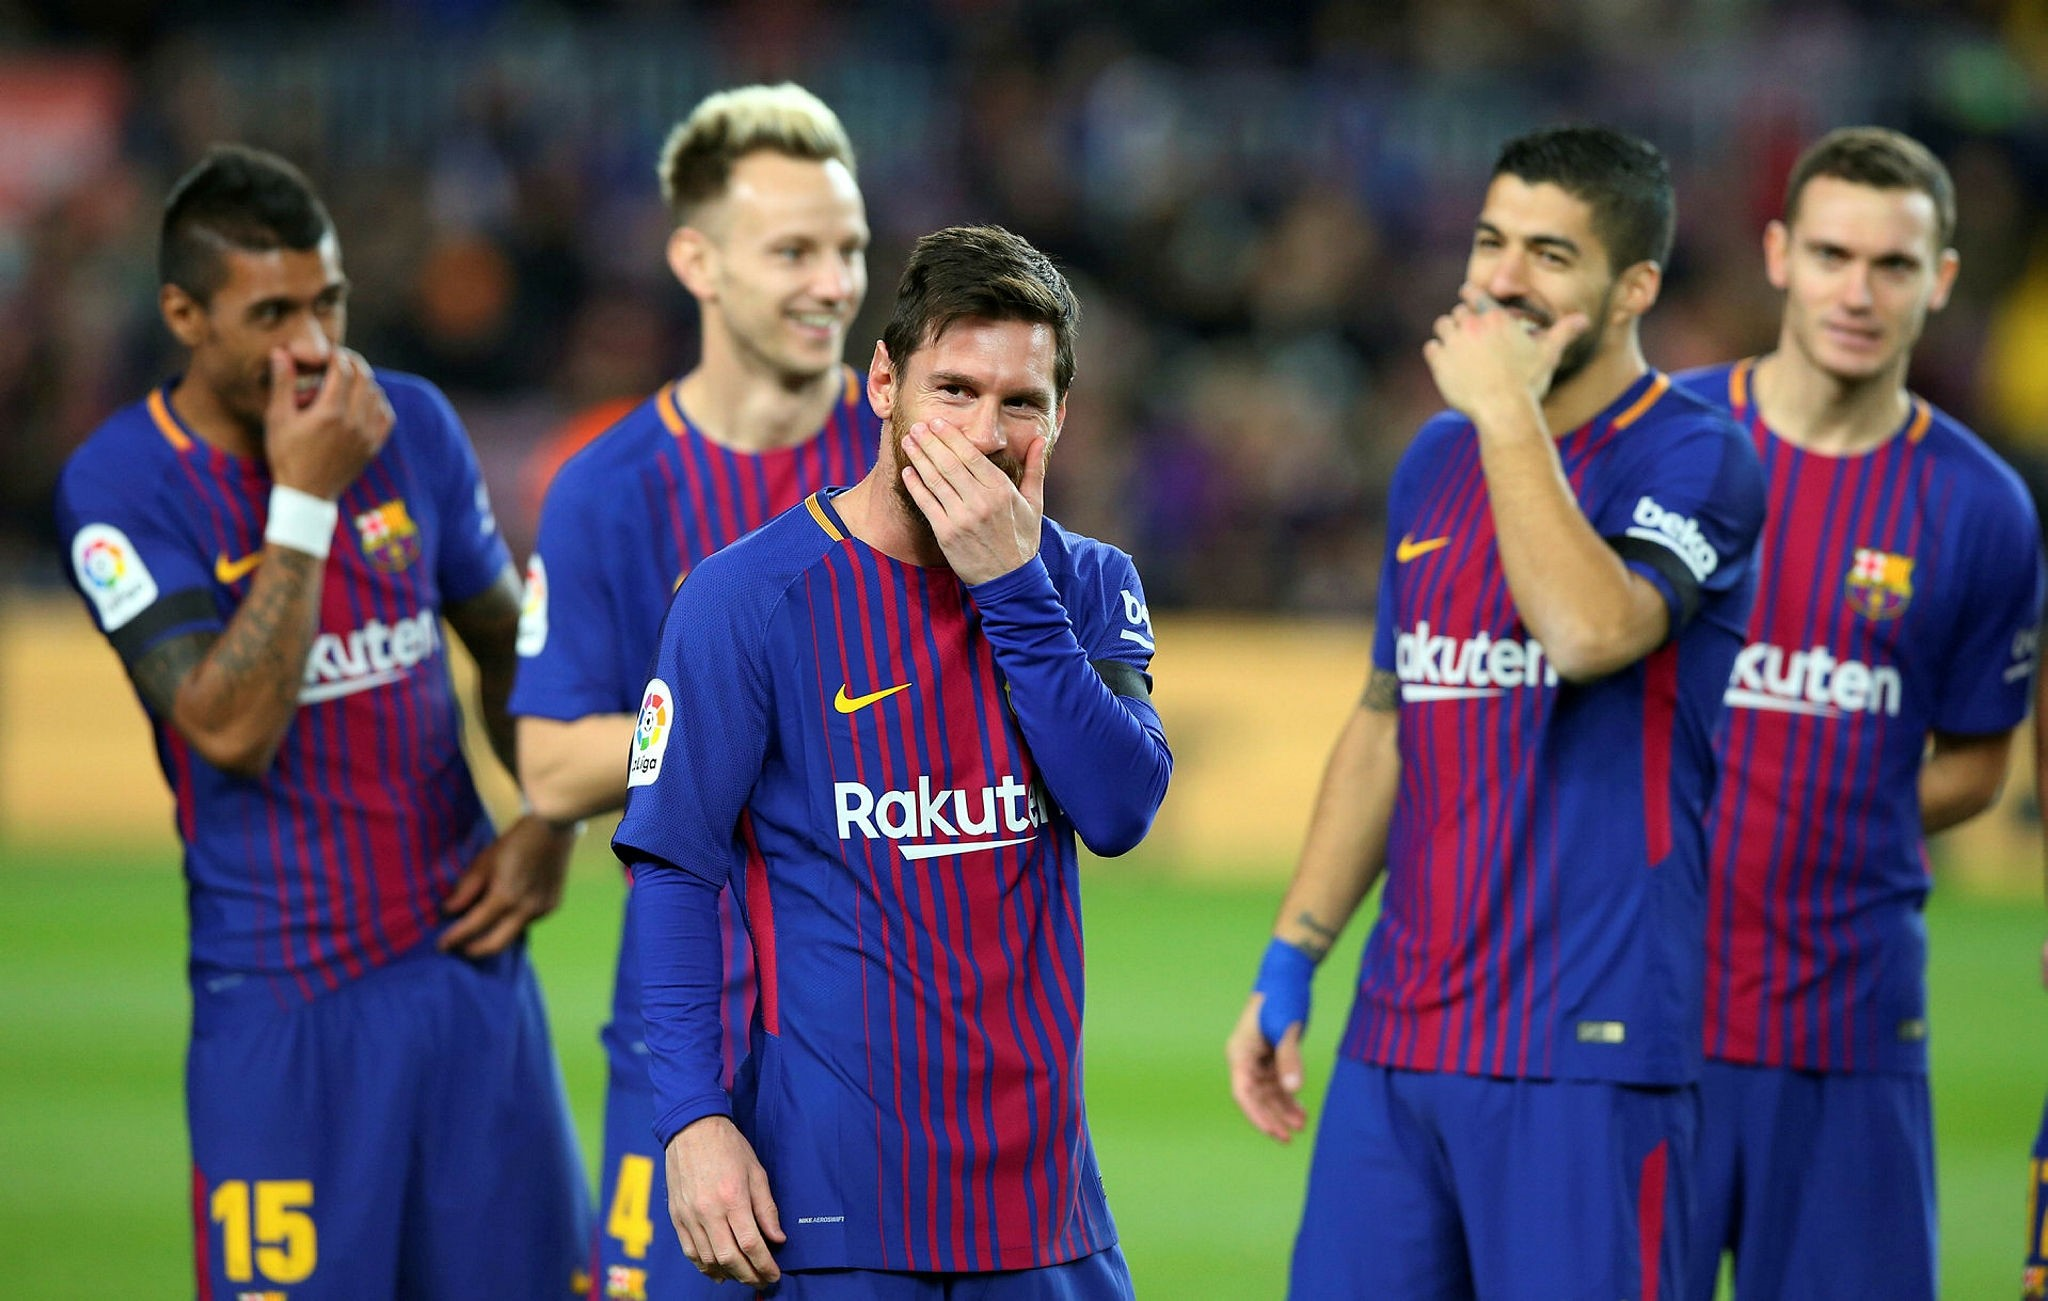 Barcelonau2019s Lionel Messi and team mates before the match in Camp Nou, Barcelona, Spain, December 17, 2017 (Reuters Photo)